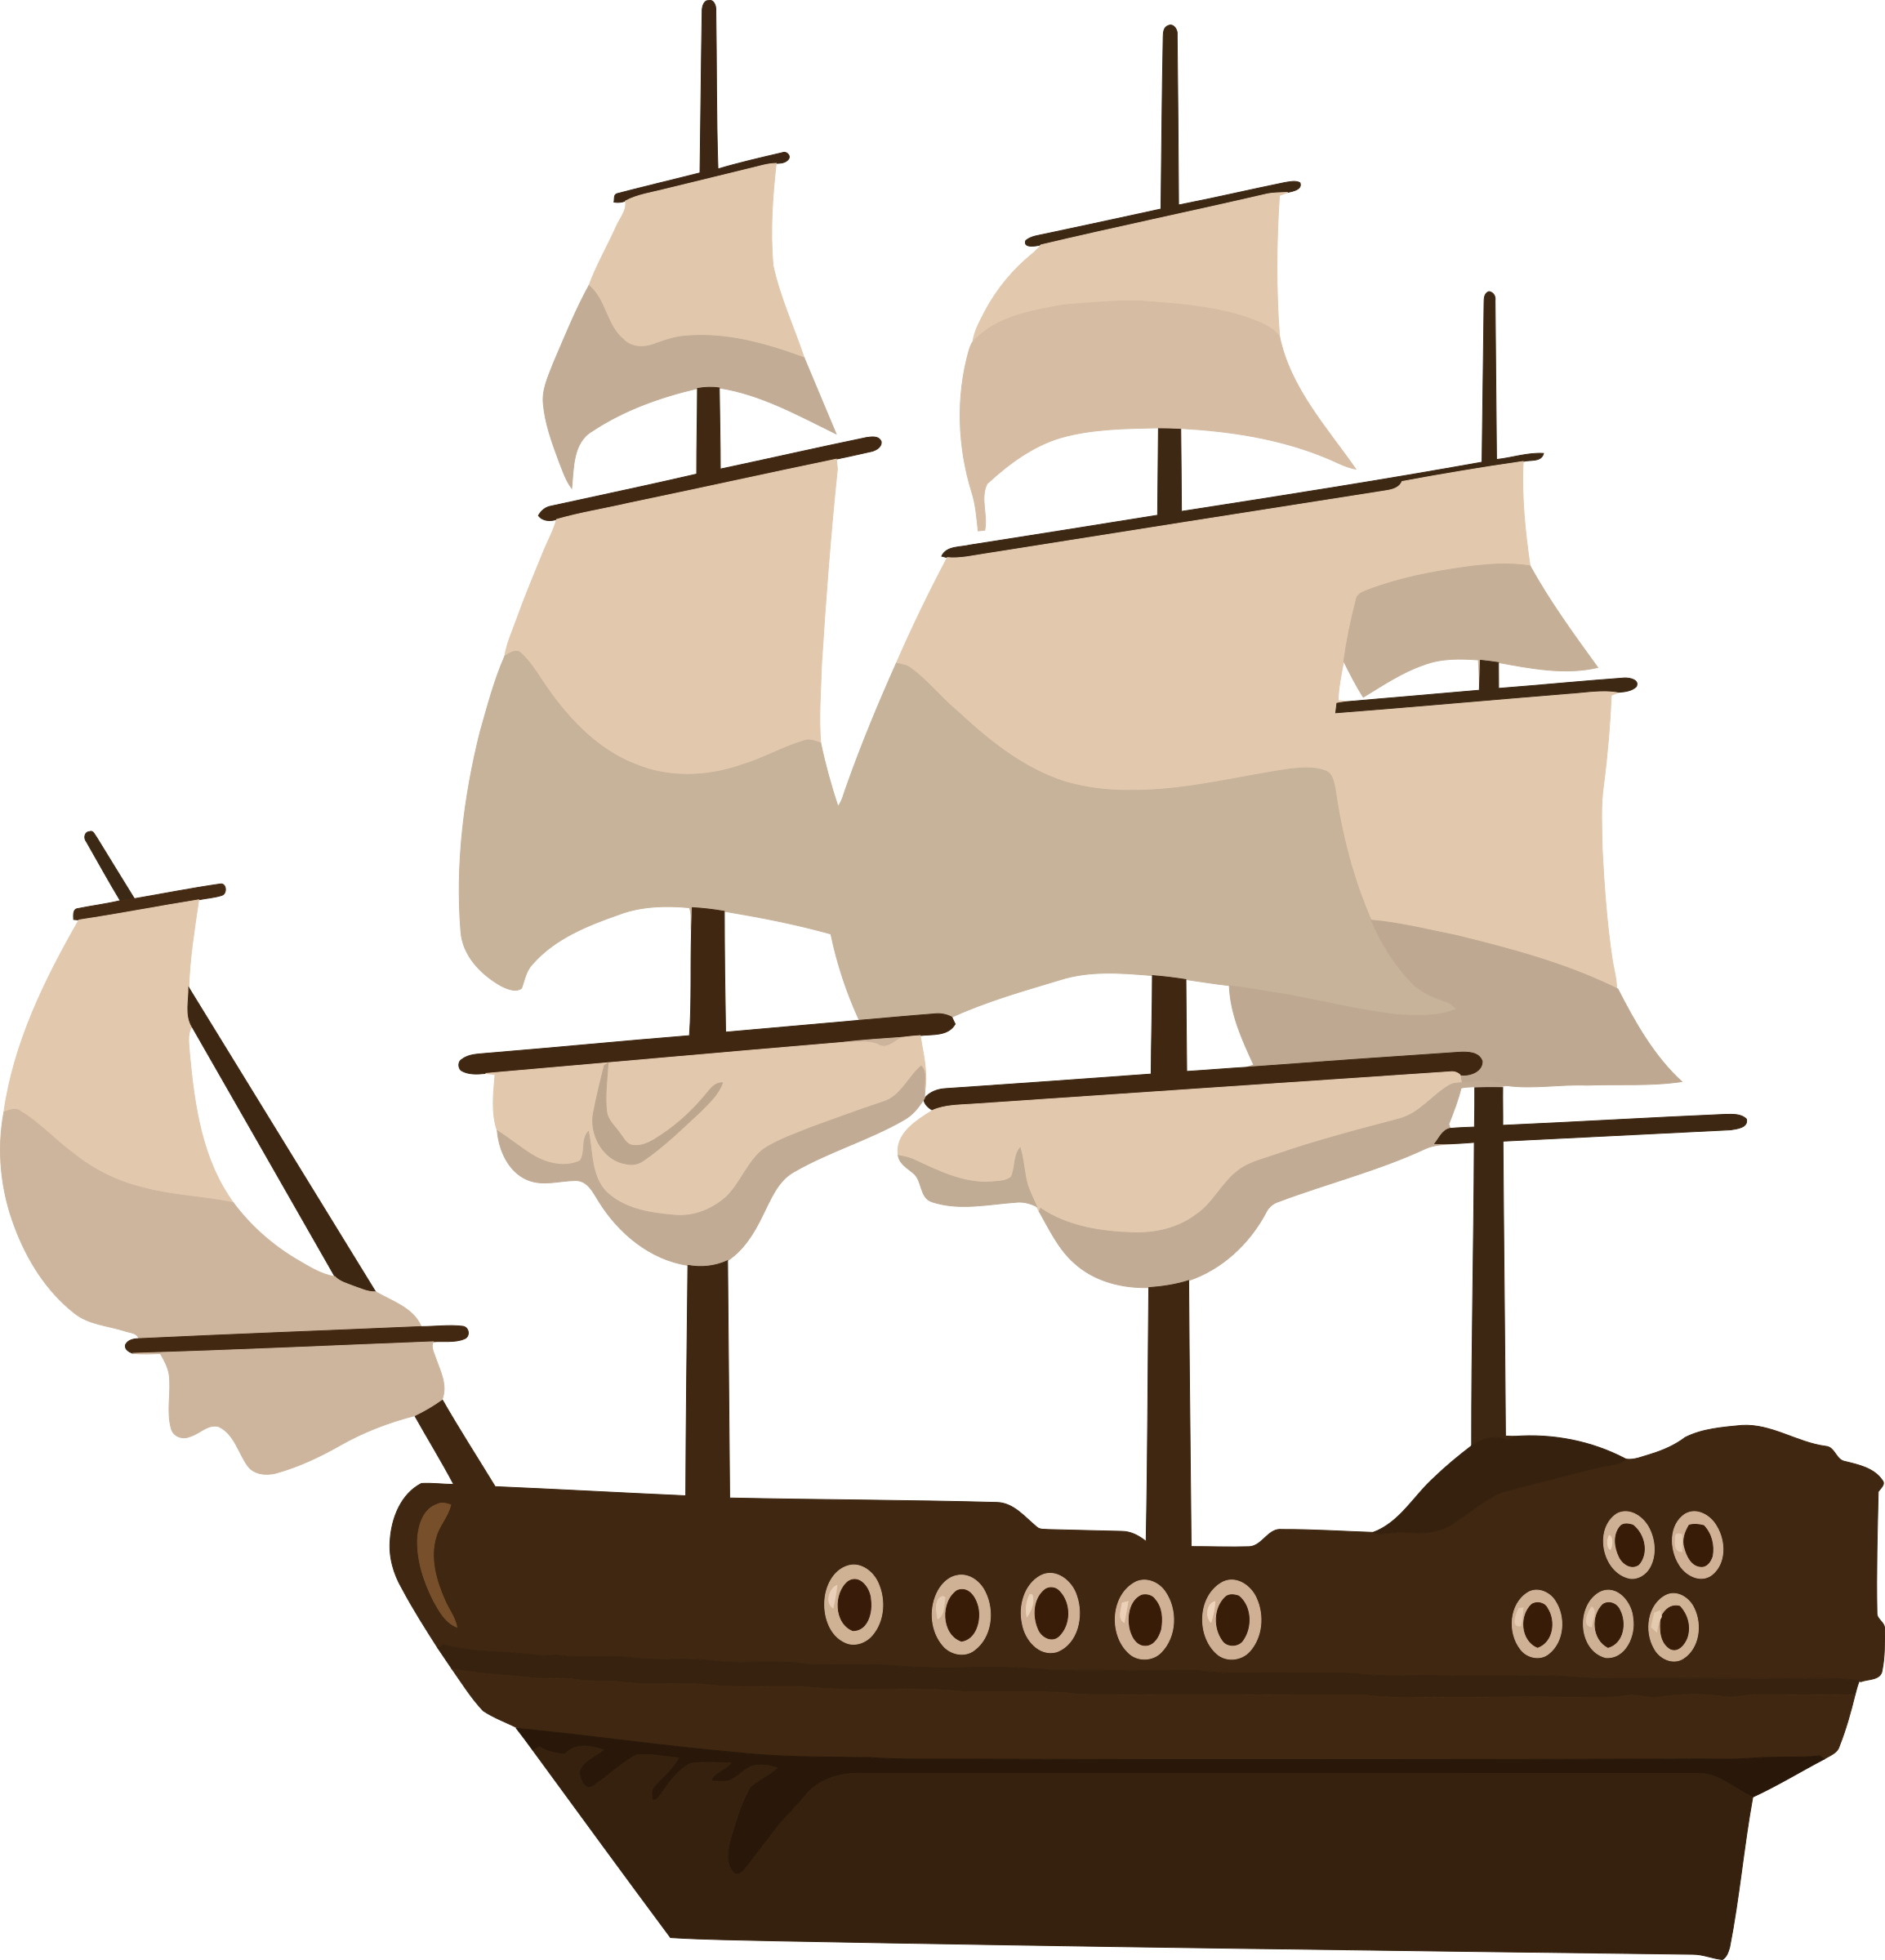 Pirate big image png. Navy clipart navy ship